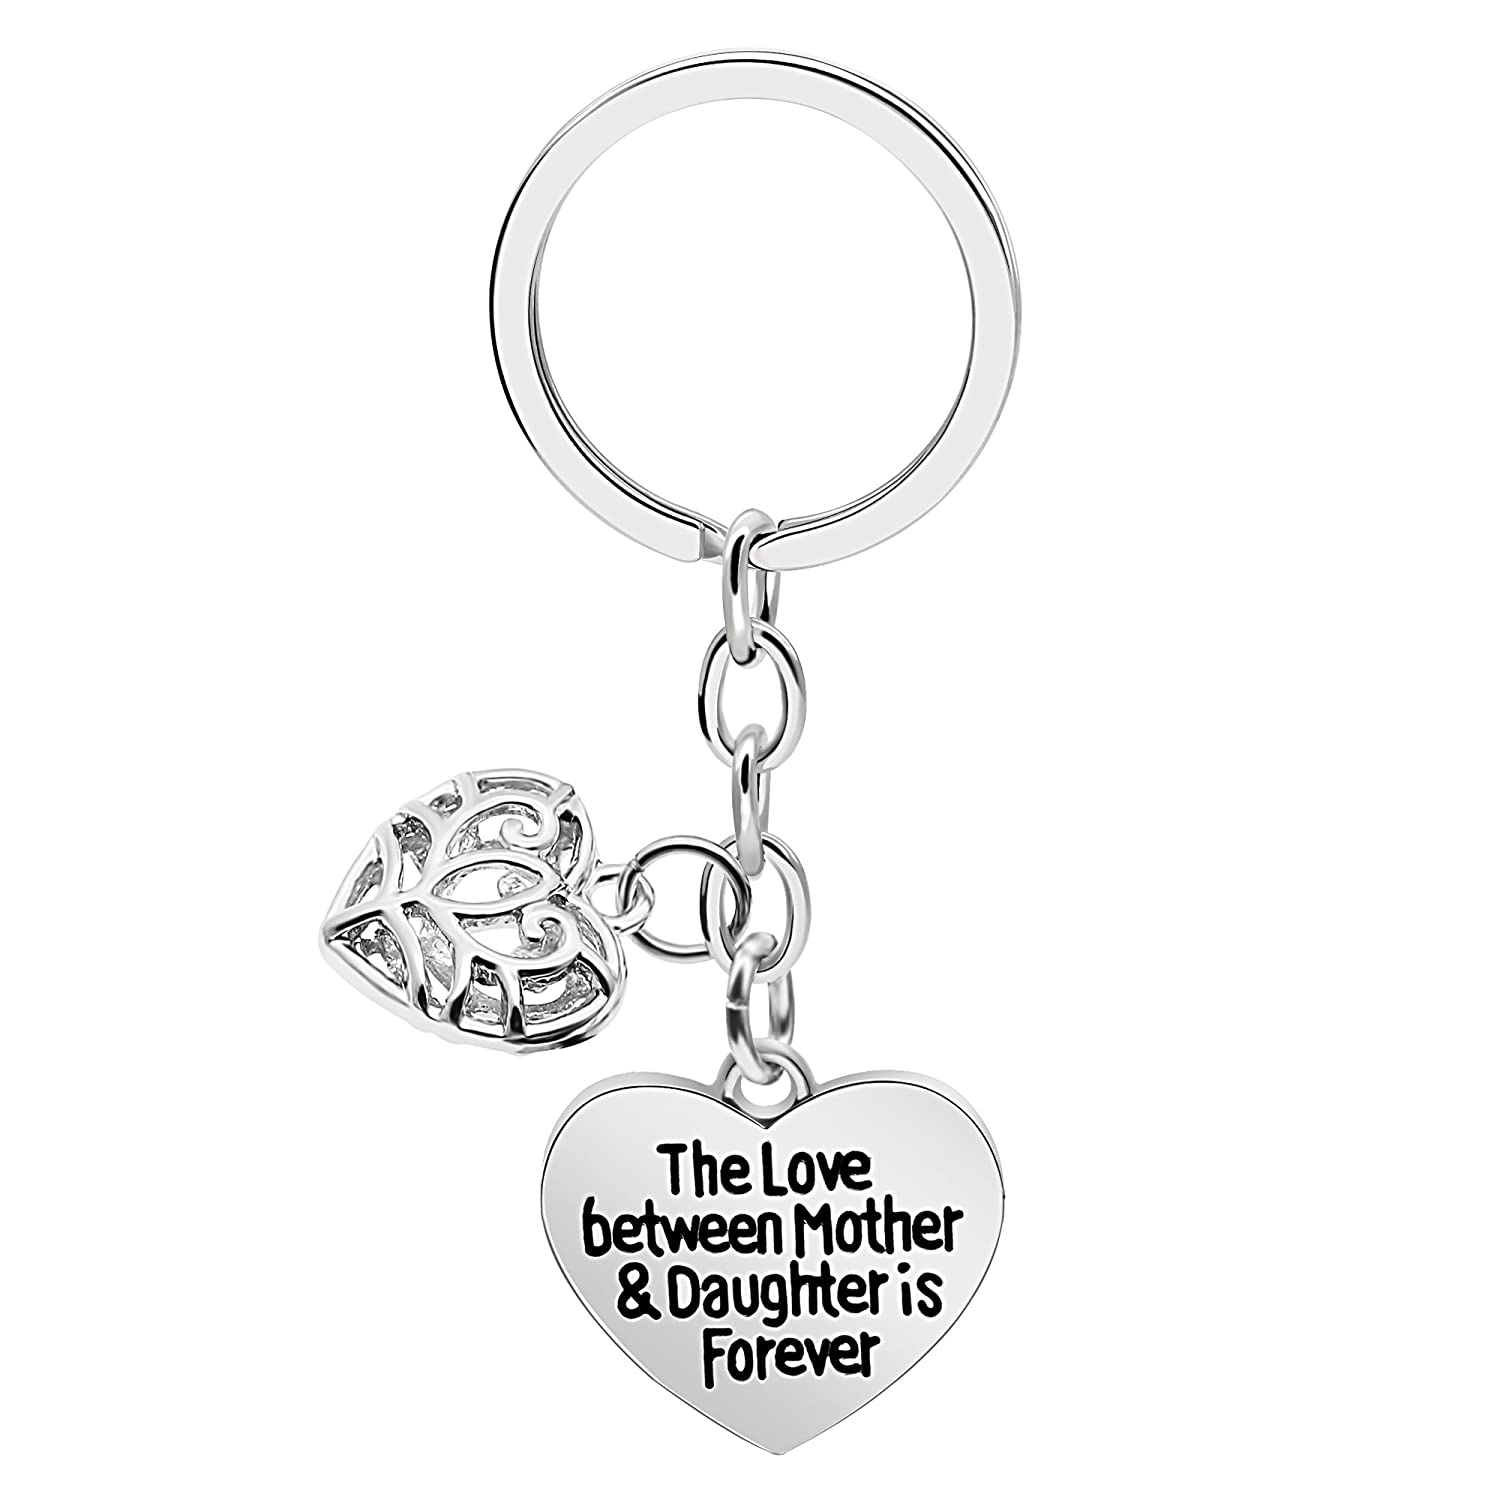 Double Pendant Key Chain Ring Mother Day Gift Love Heart Mom The Love Between Mother and Daughter is Forever AGR8T